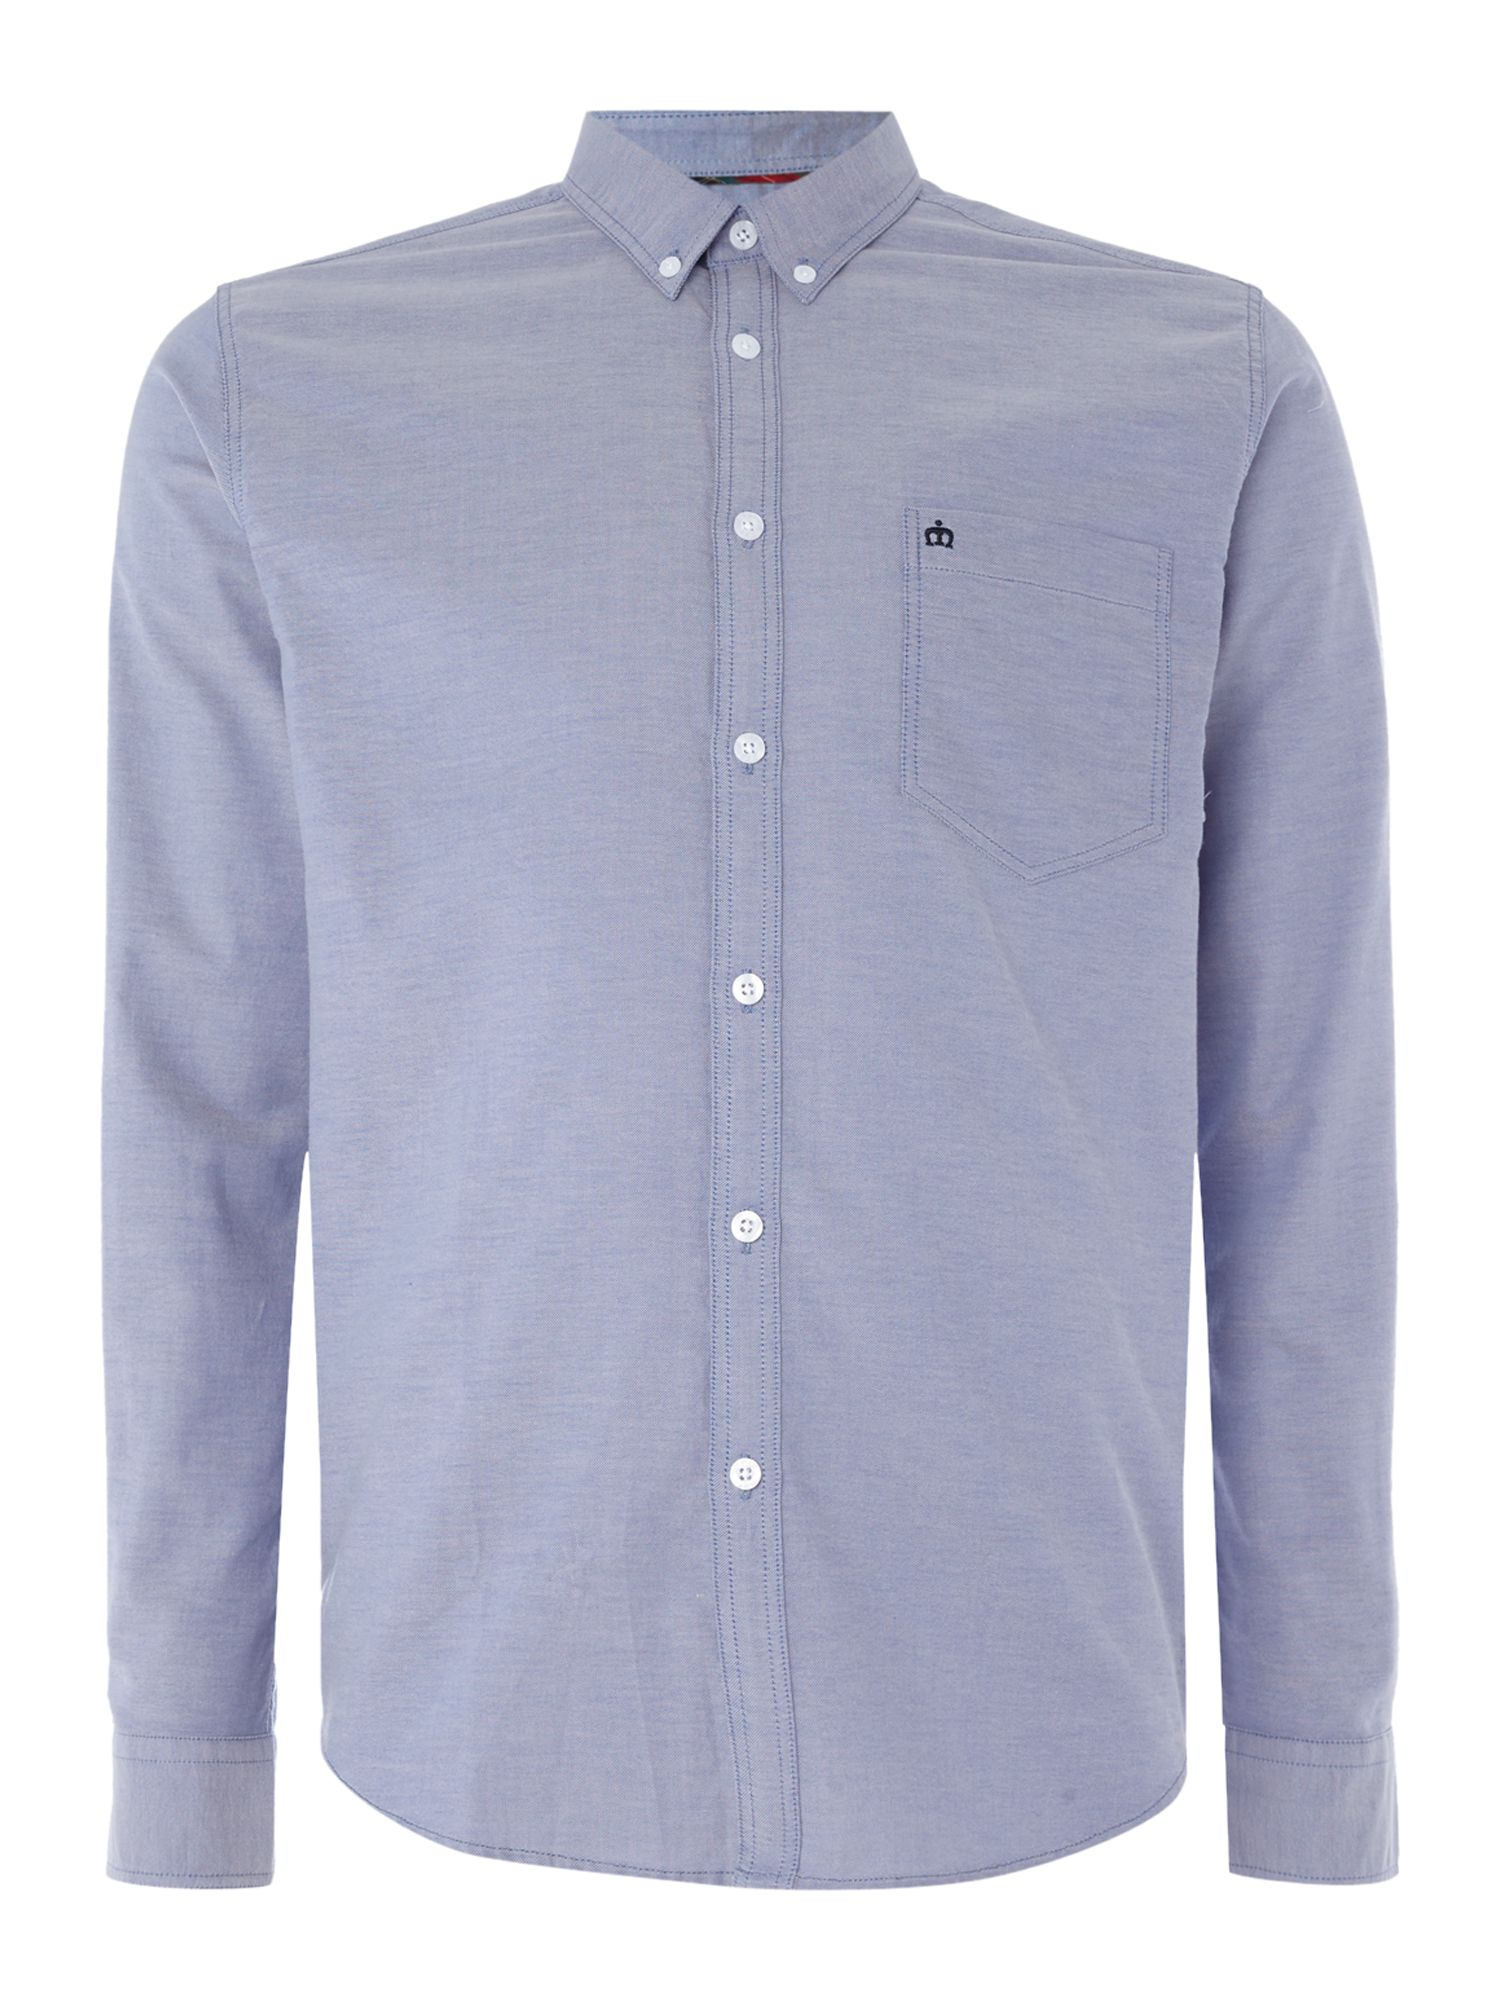 Men 39 s merc merc long sleeve button down oxford shirt blue for Oxford long sleeve button down shirt